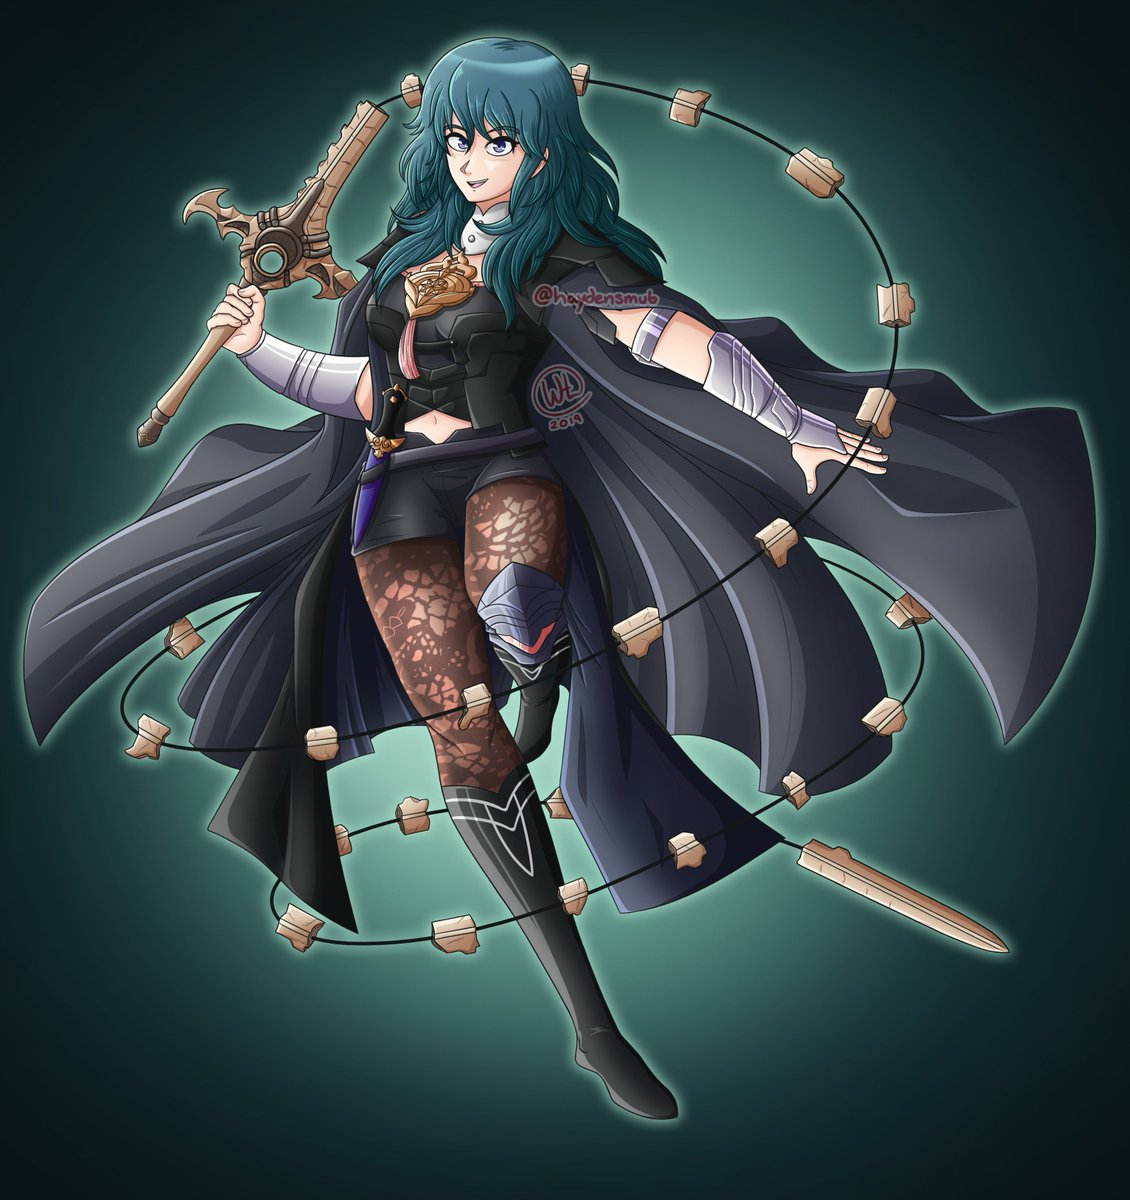 byleth from #fireemblem: three houses!